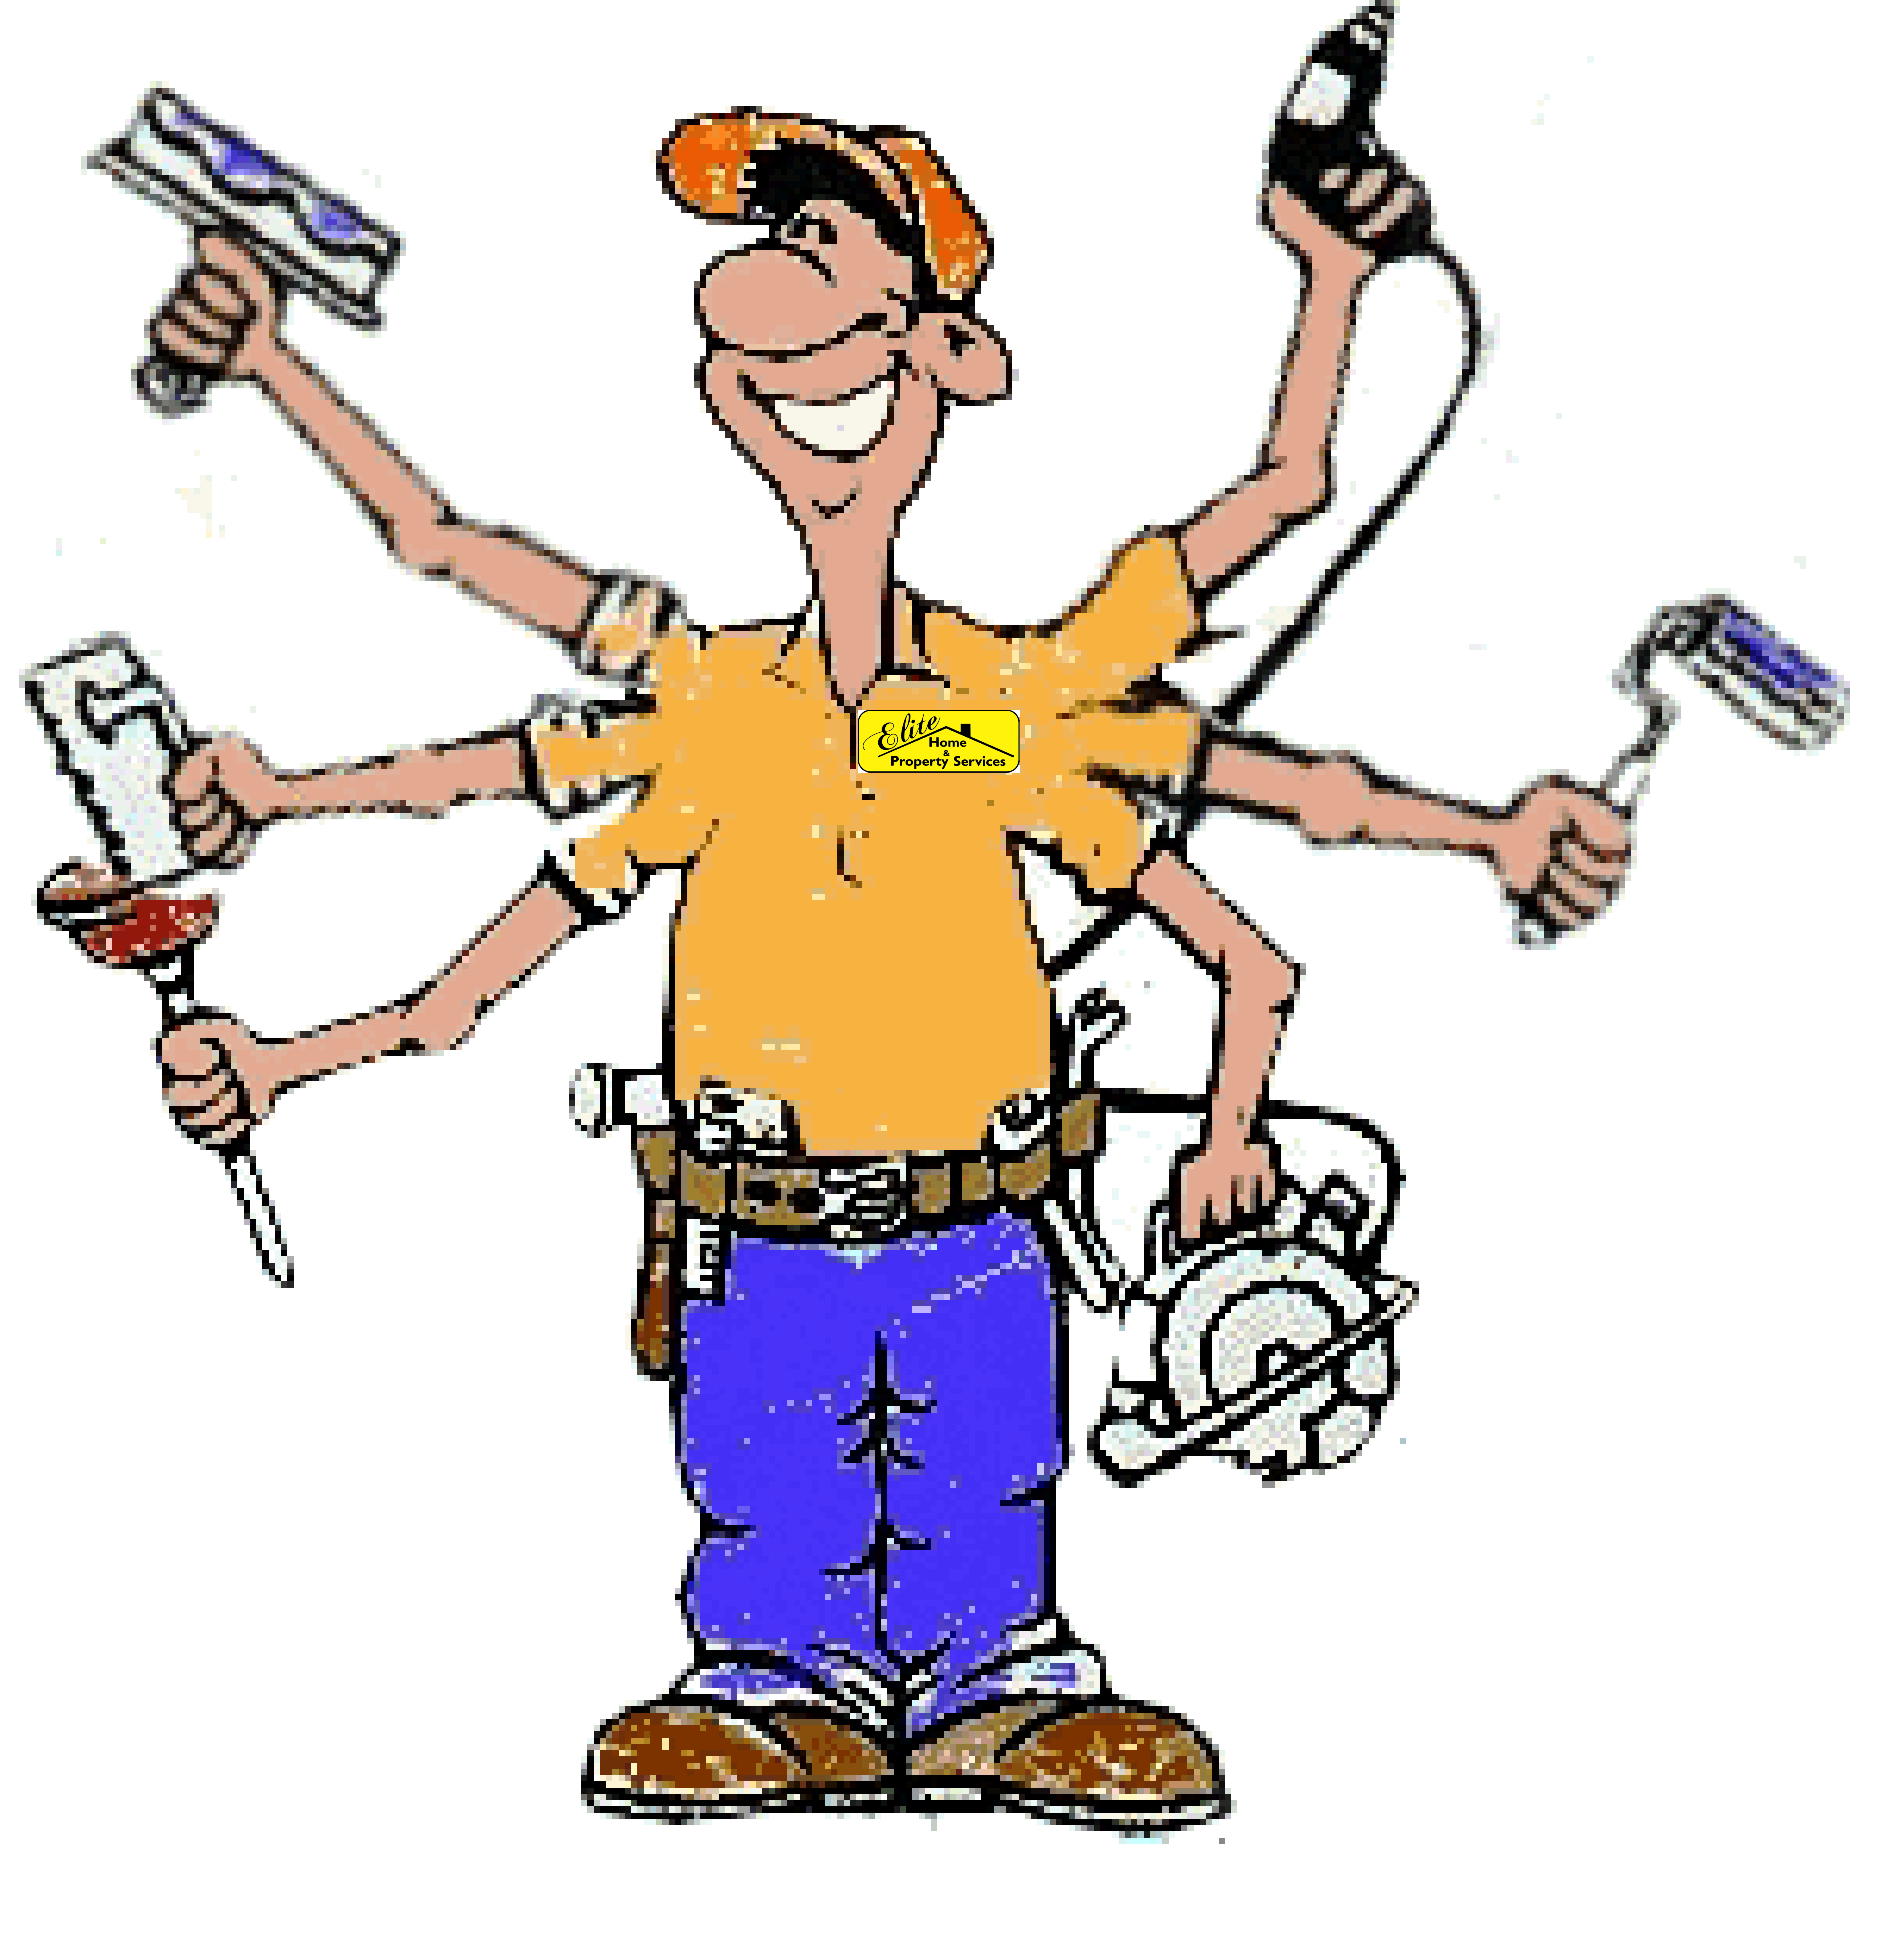 Free Maintenance Cliparts, Download Free Clip Art, Free Clip.